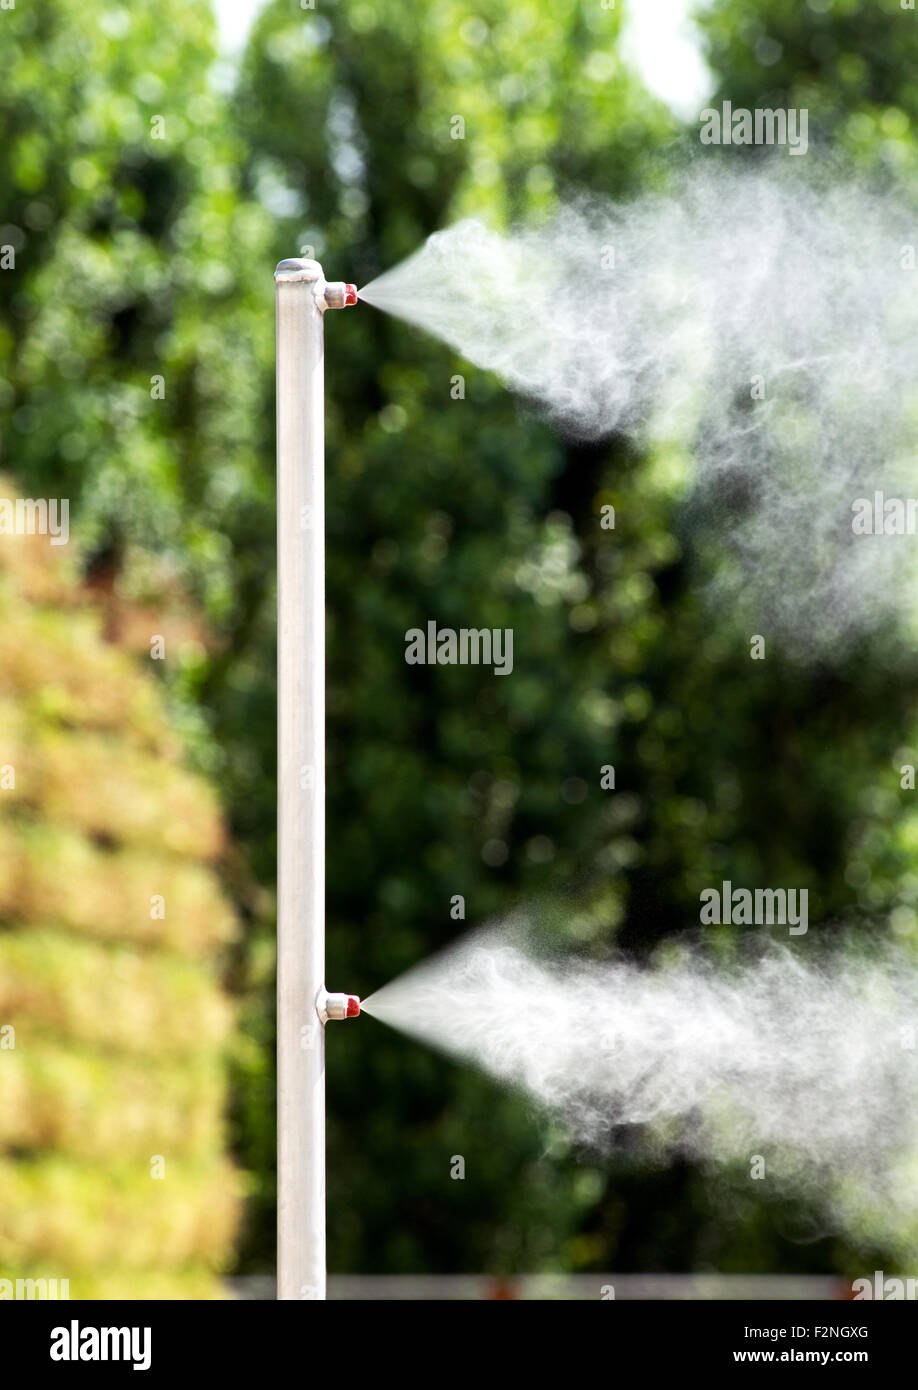 Outdoor vaporizer for refreshing people in summertime - Stock Image